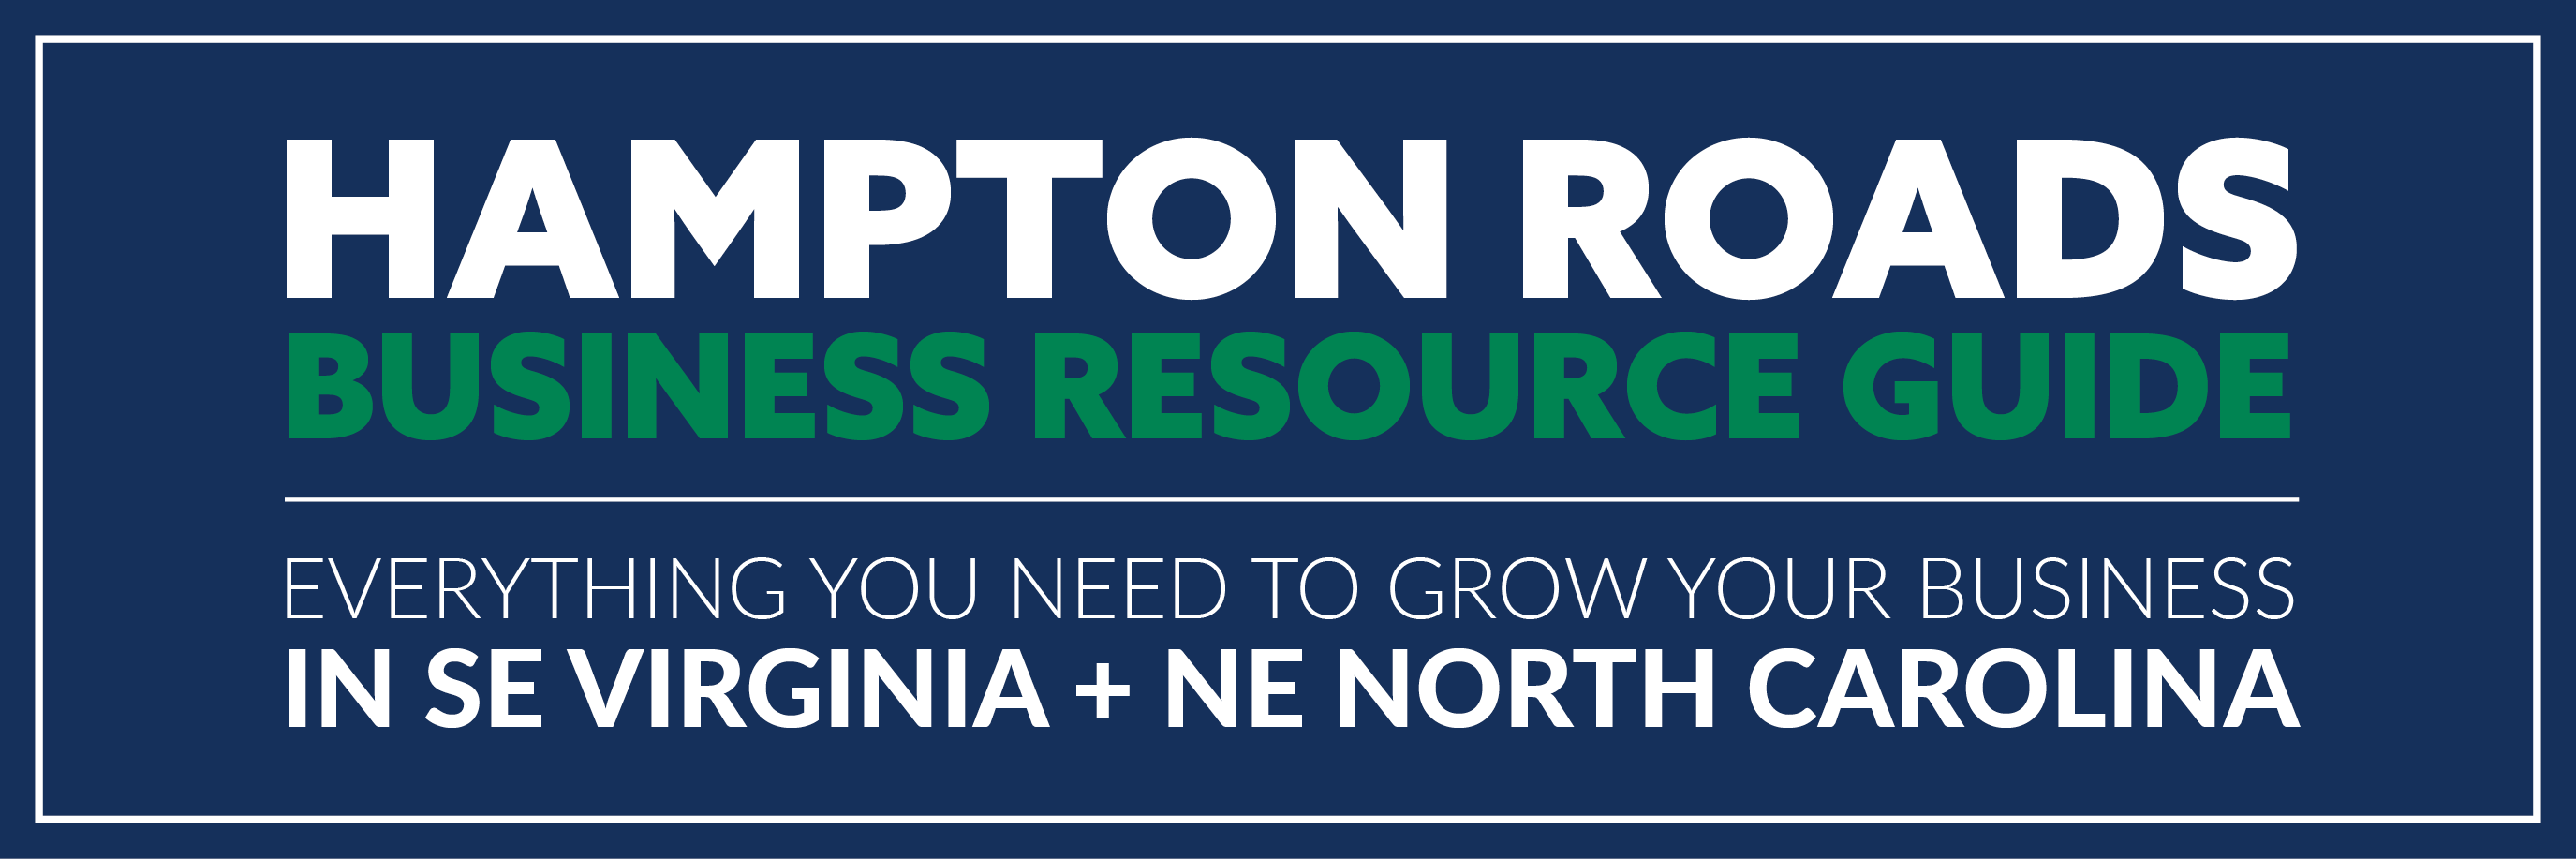 Hampton Roads Business Resource Guide